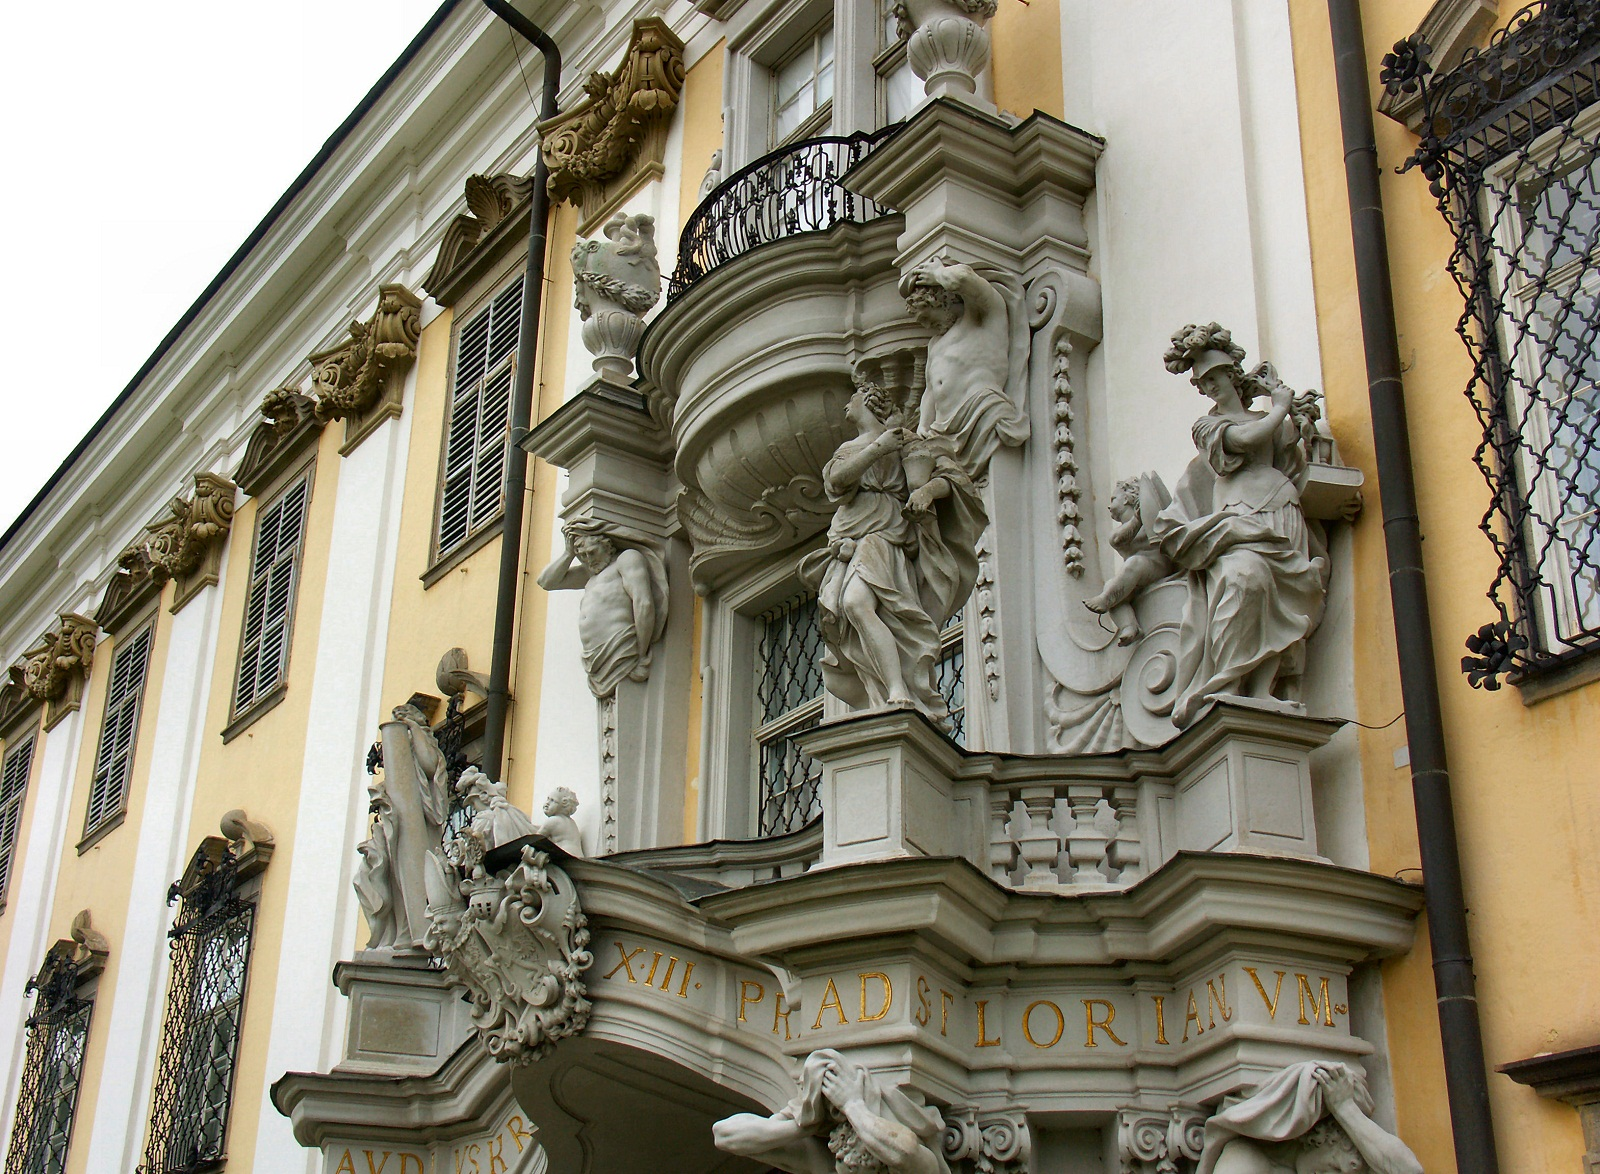 Saint Florian Abbey, Austria, Statues at entrance